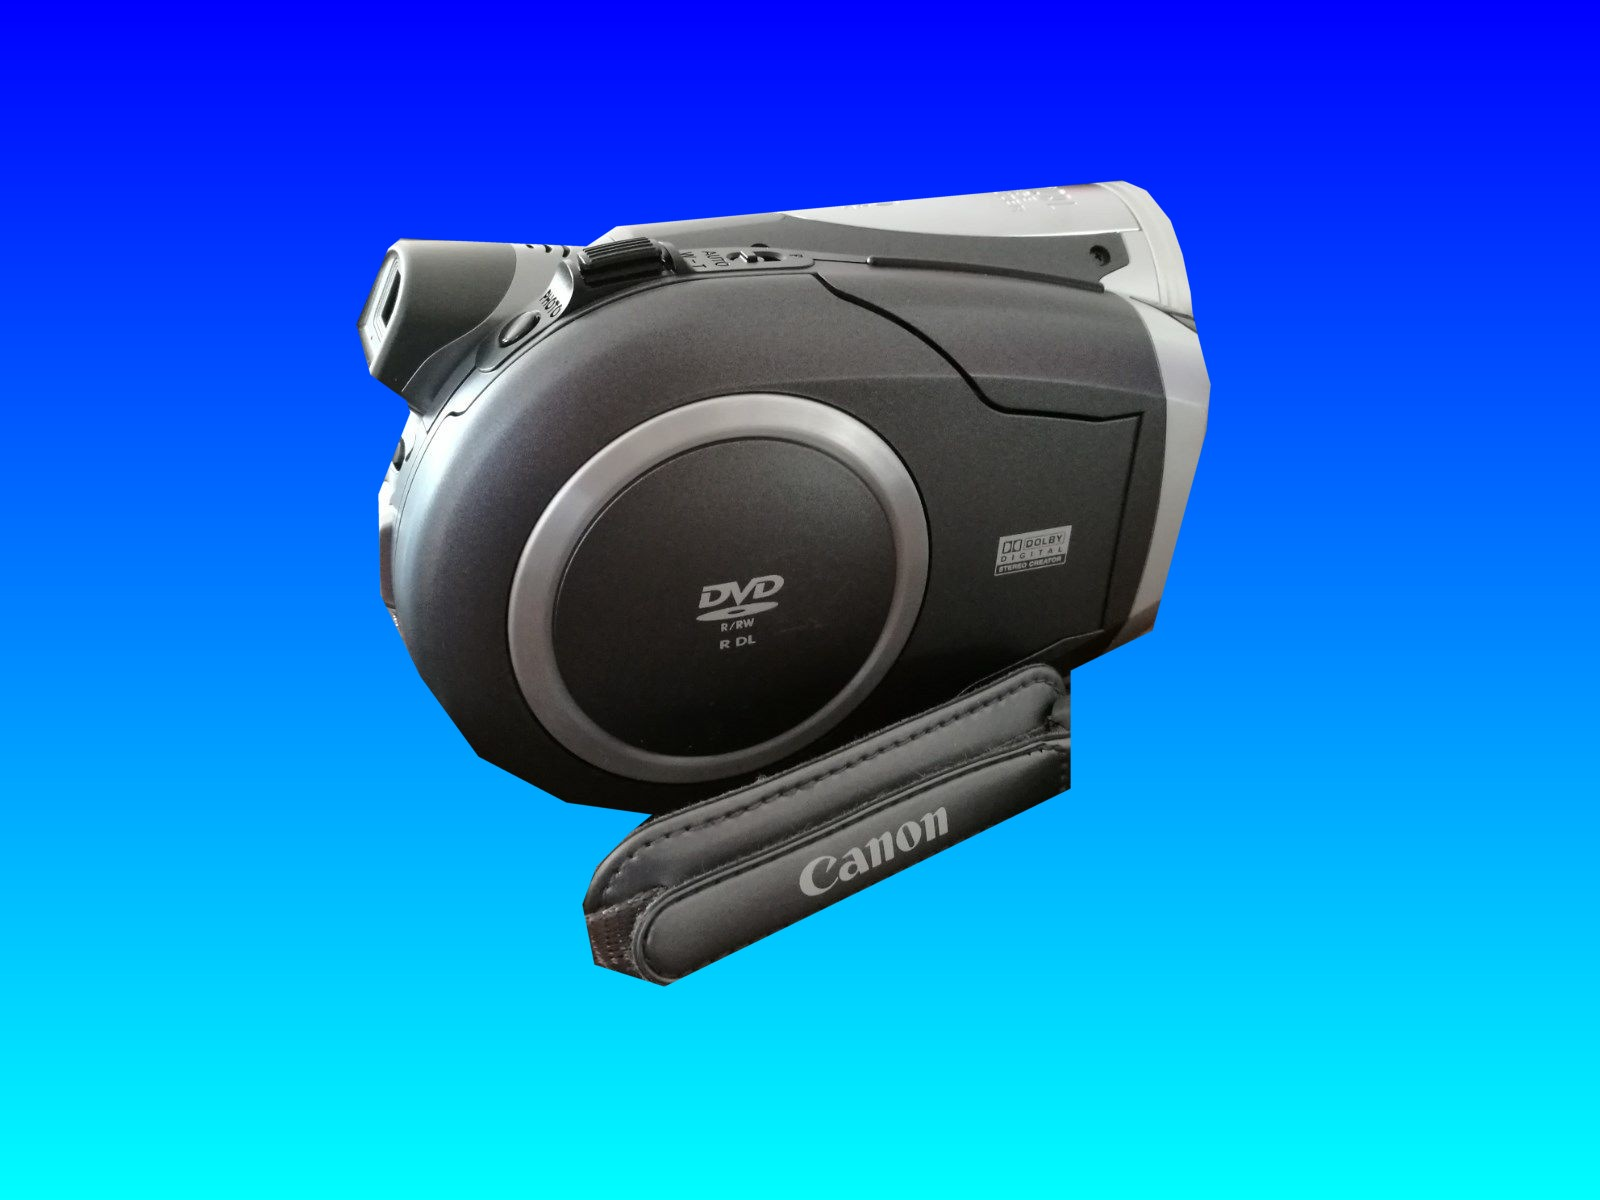 A Canon DC-300 camcorder that uses mini DVD and dual layer discs to record video. The recordings are sometimes lost due to disk finalization problems however they can be sent to us for recovery.